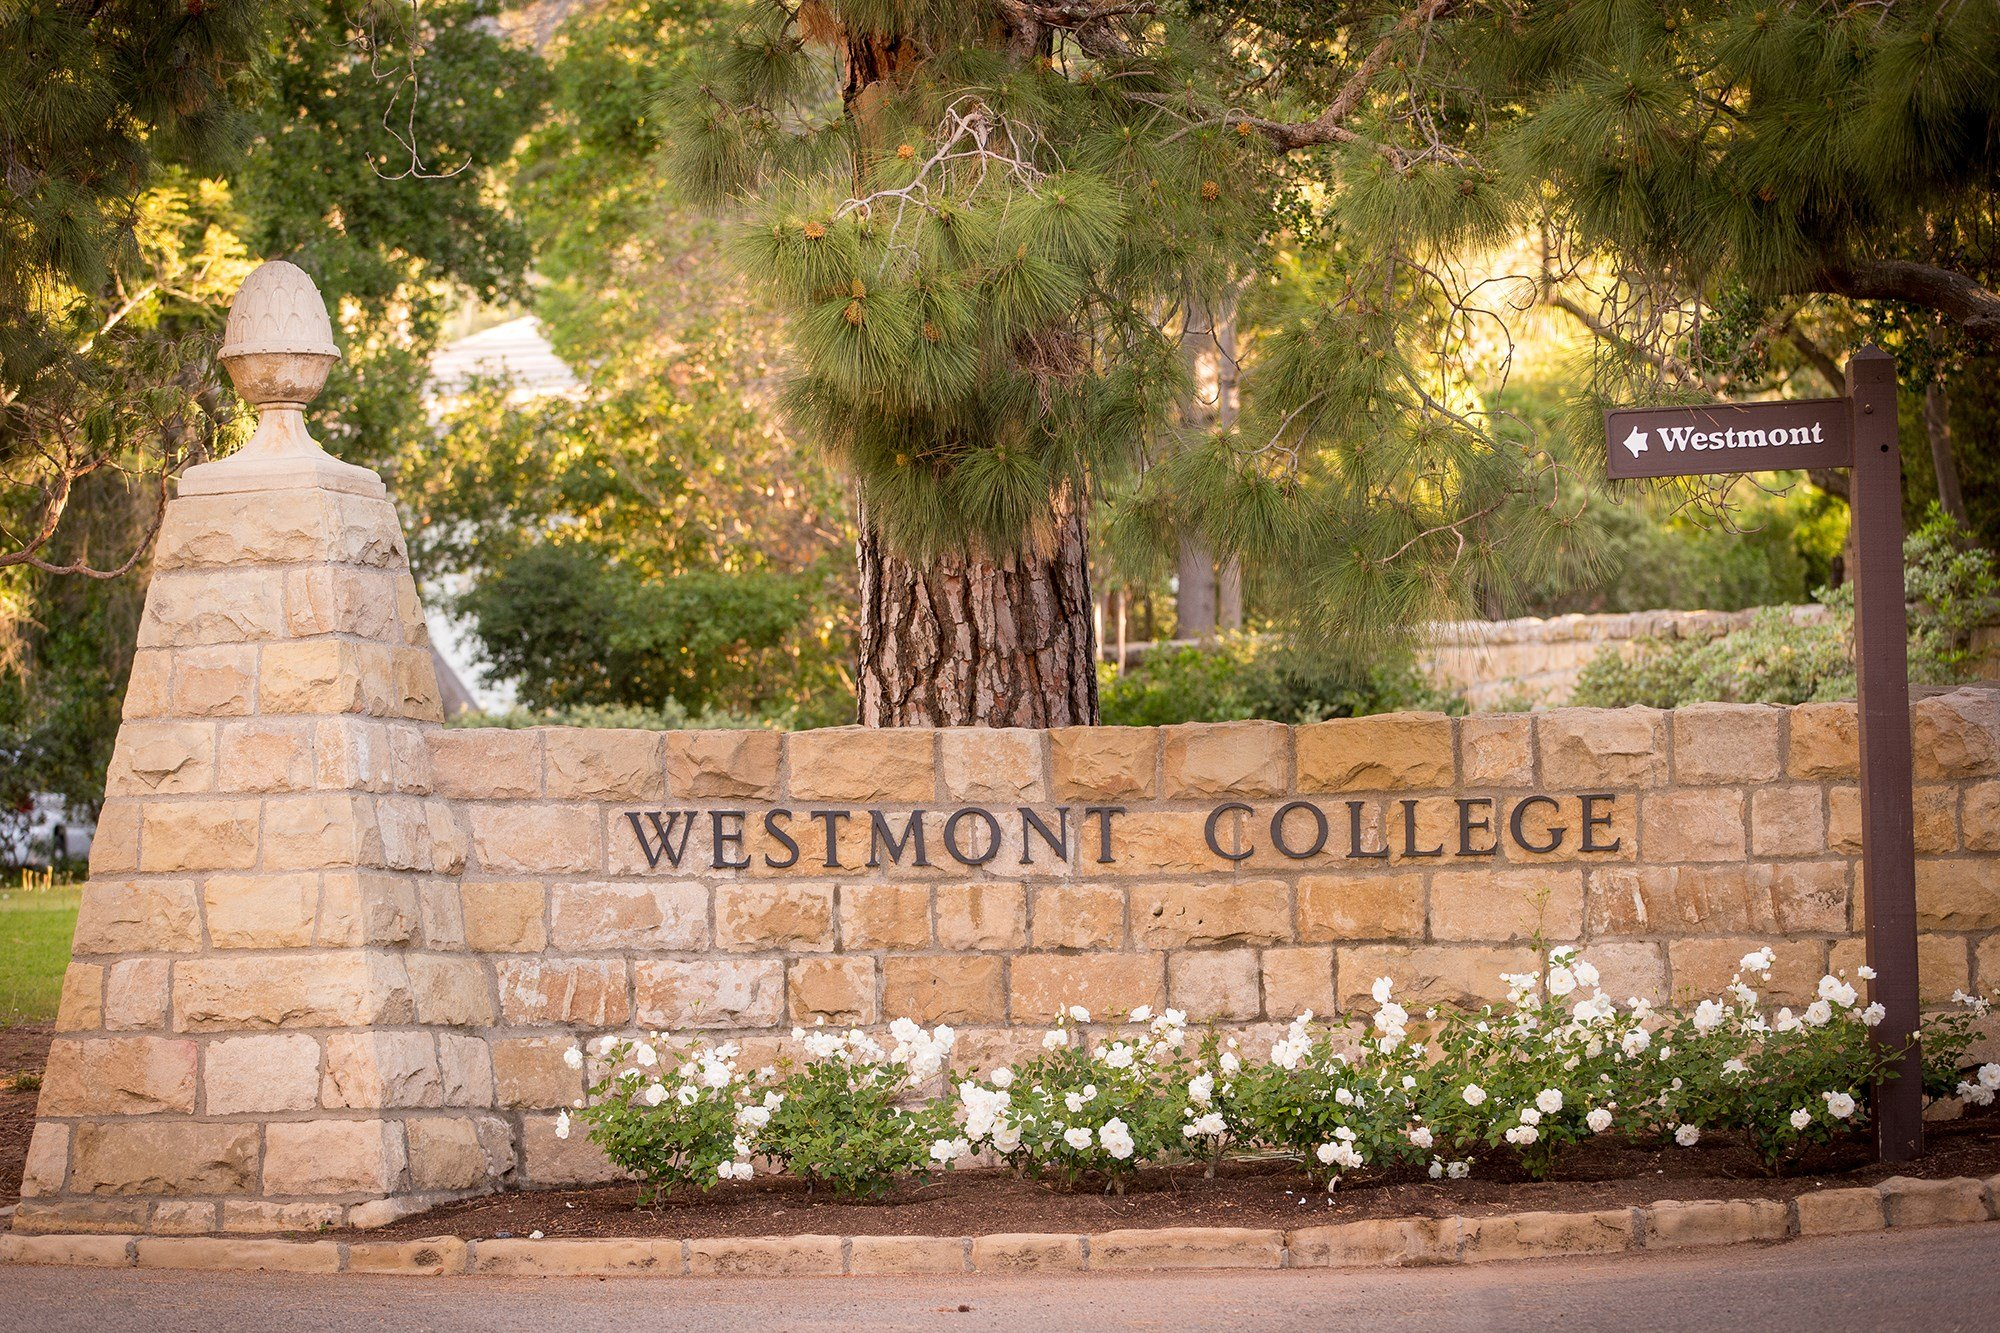 (Photo courtesy Westmont College)